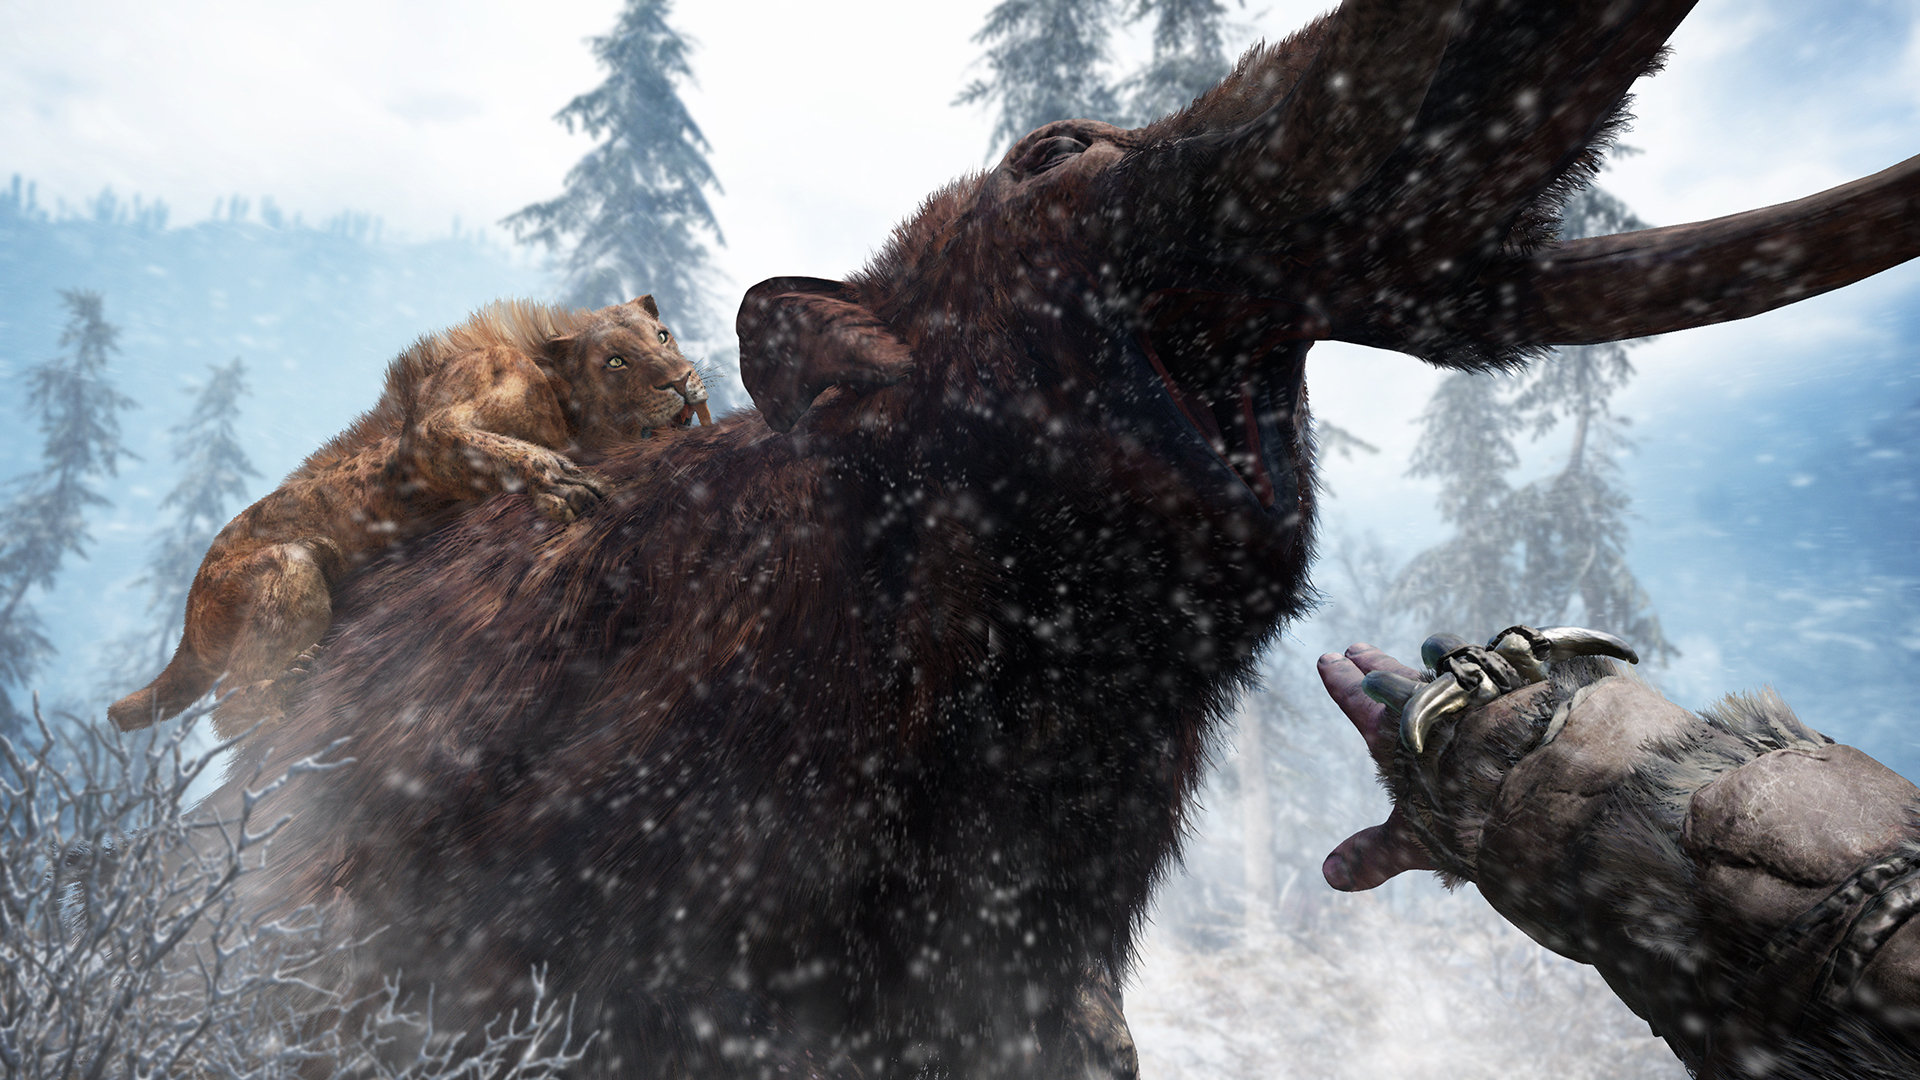 far-cry-primal-screen-06-ps4-us-15dec15?